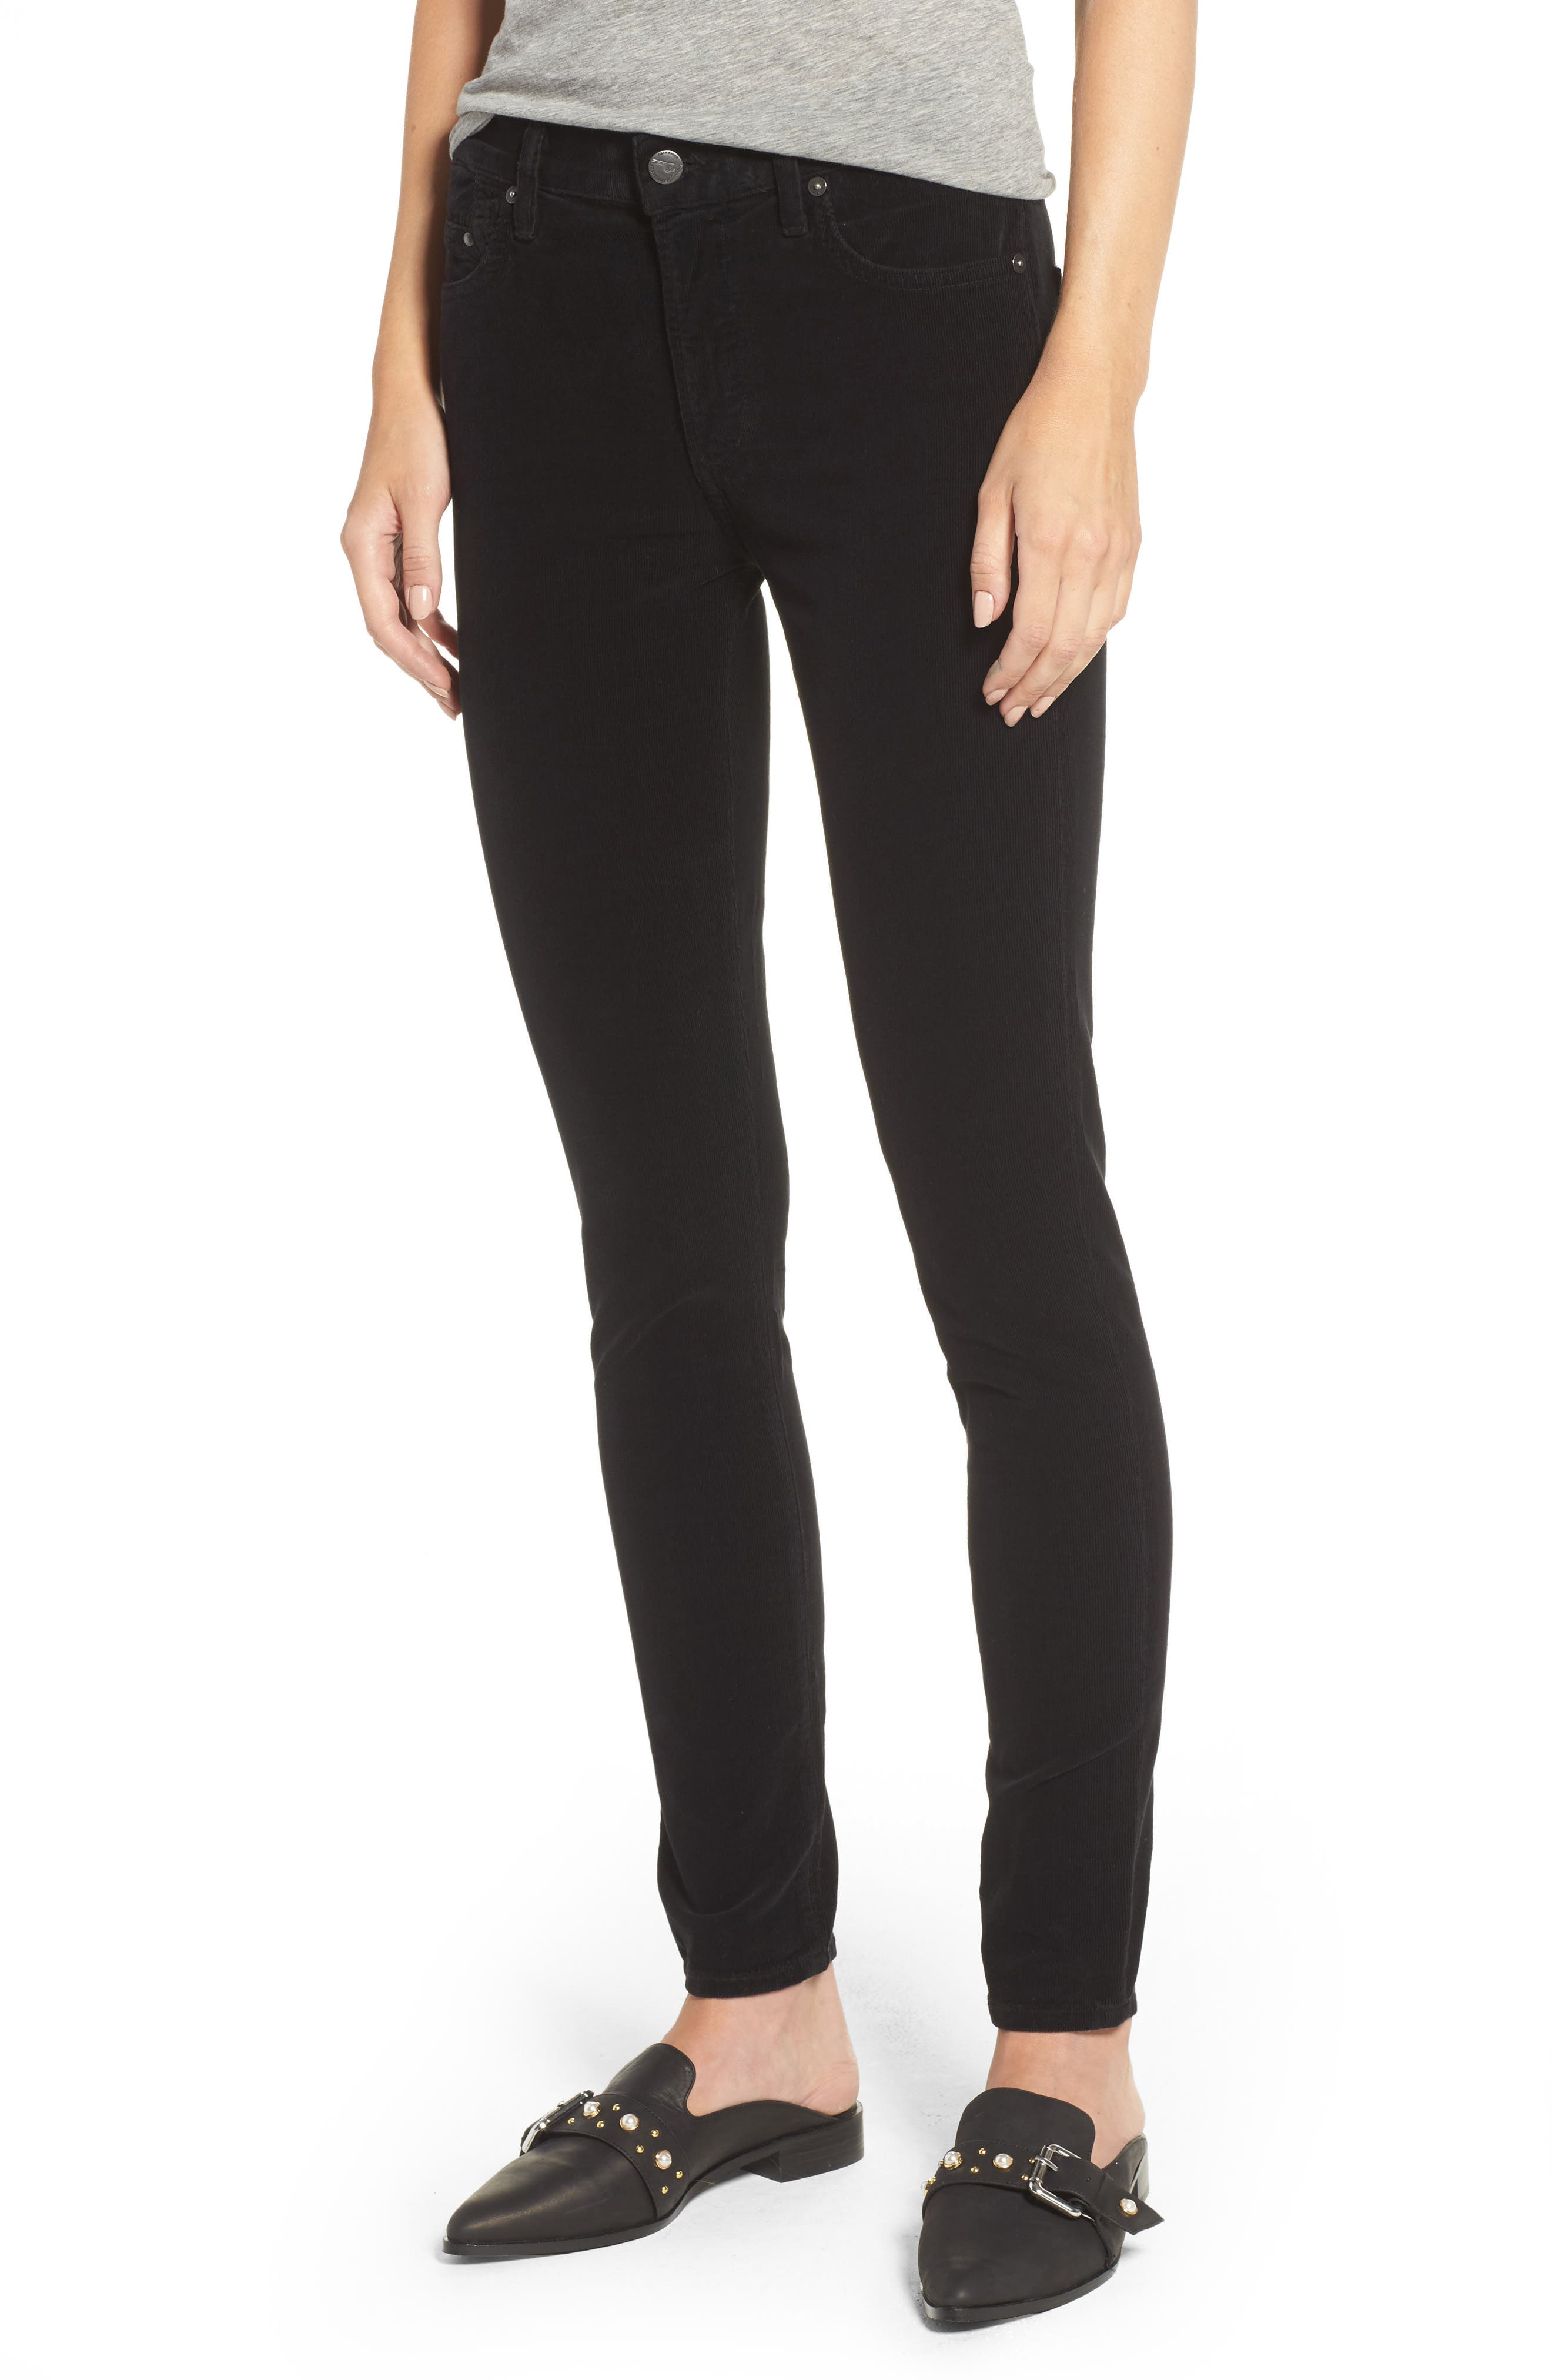 Rocket High Waist Skinny Corduroy Pants,                             Main thumbnail 1, color,                             Black Cord